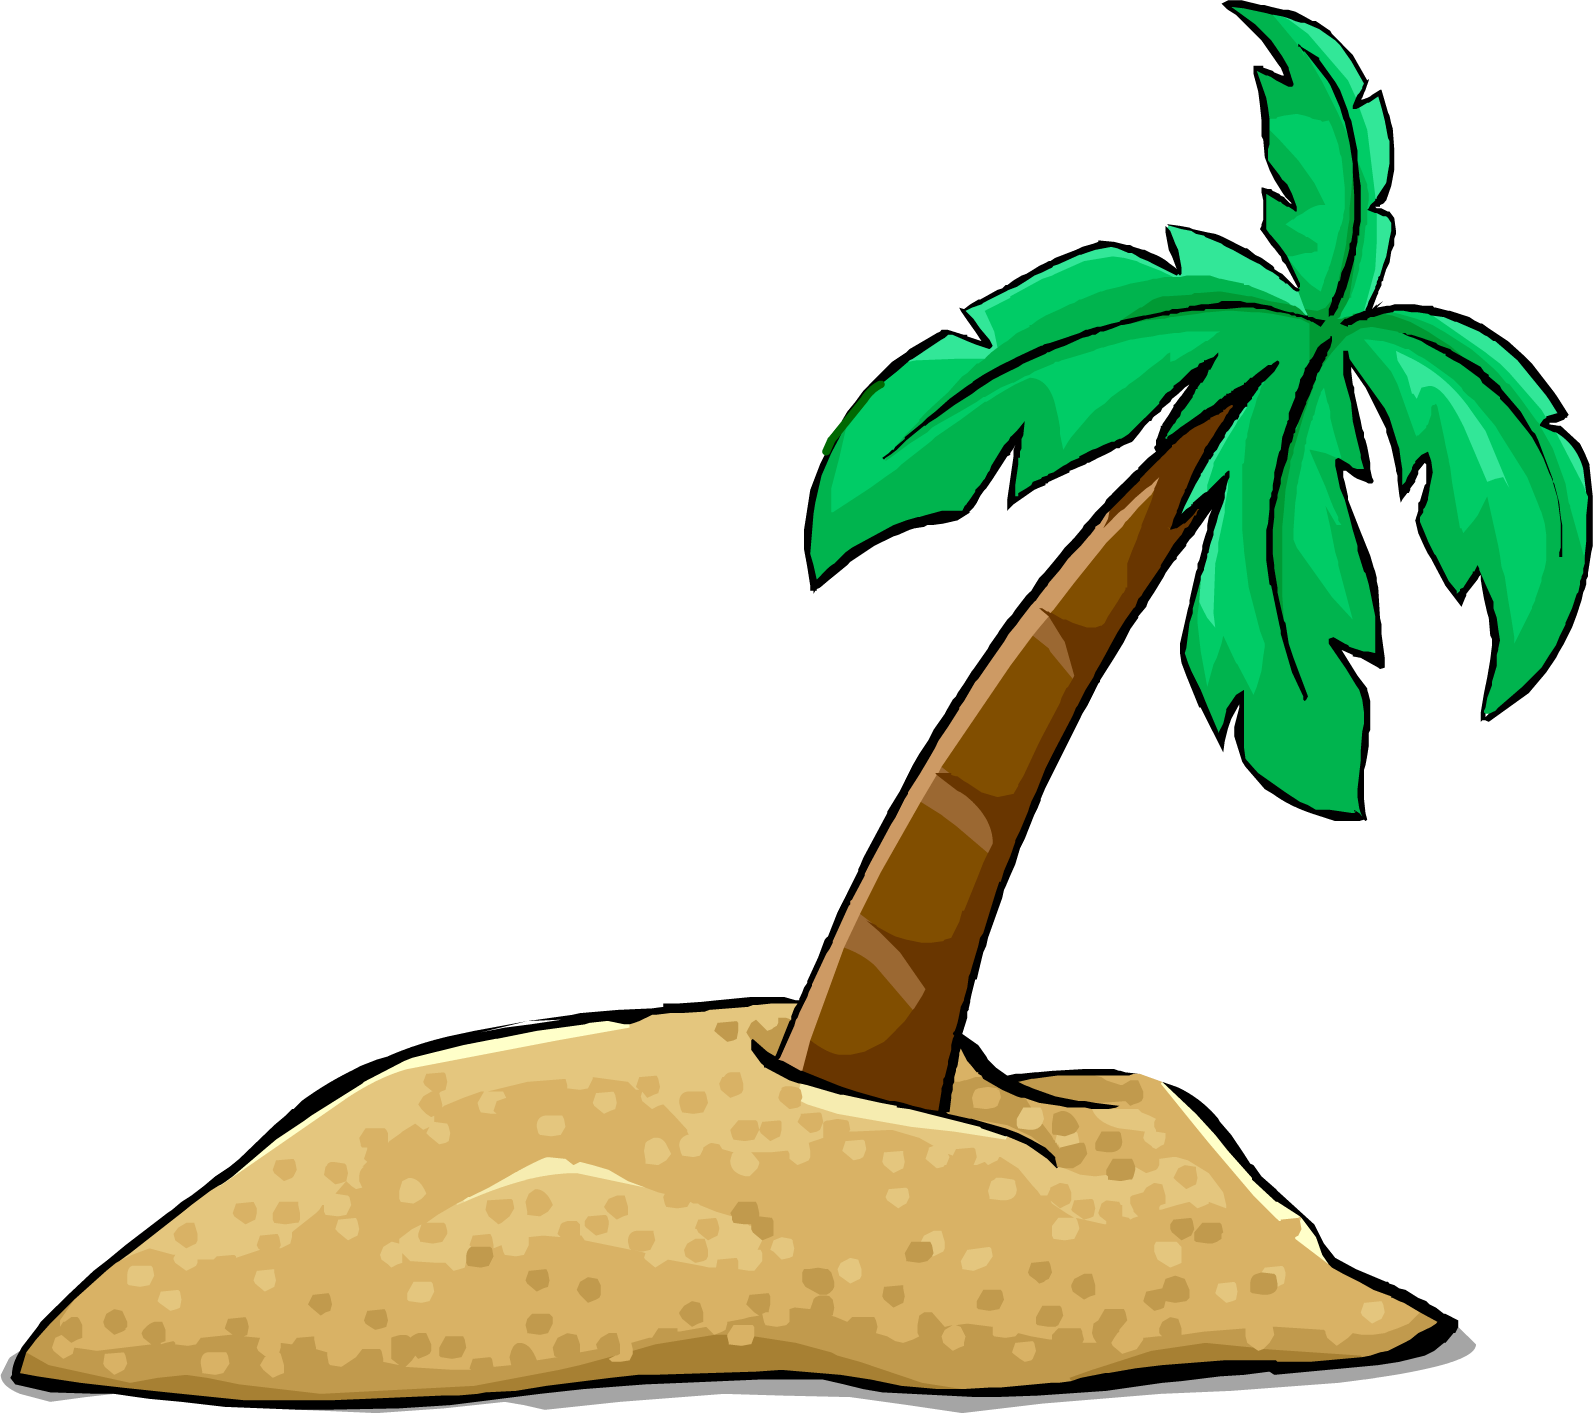 Png File Name: Island Png Hd Dimension: 1593X1413. Image Type: .png. Posted On: May 21St, 2017. Category: Nature Tags: Island - Island, Transparent background PNG HD thumbnail